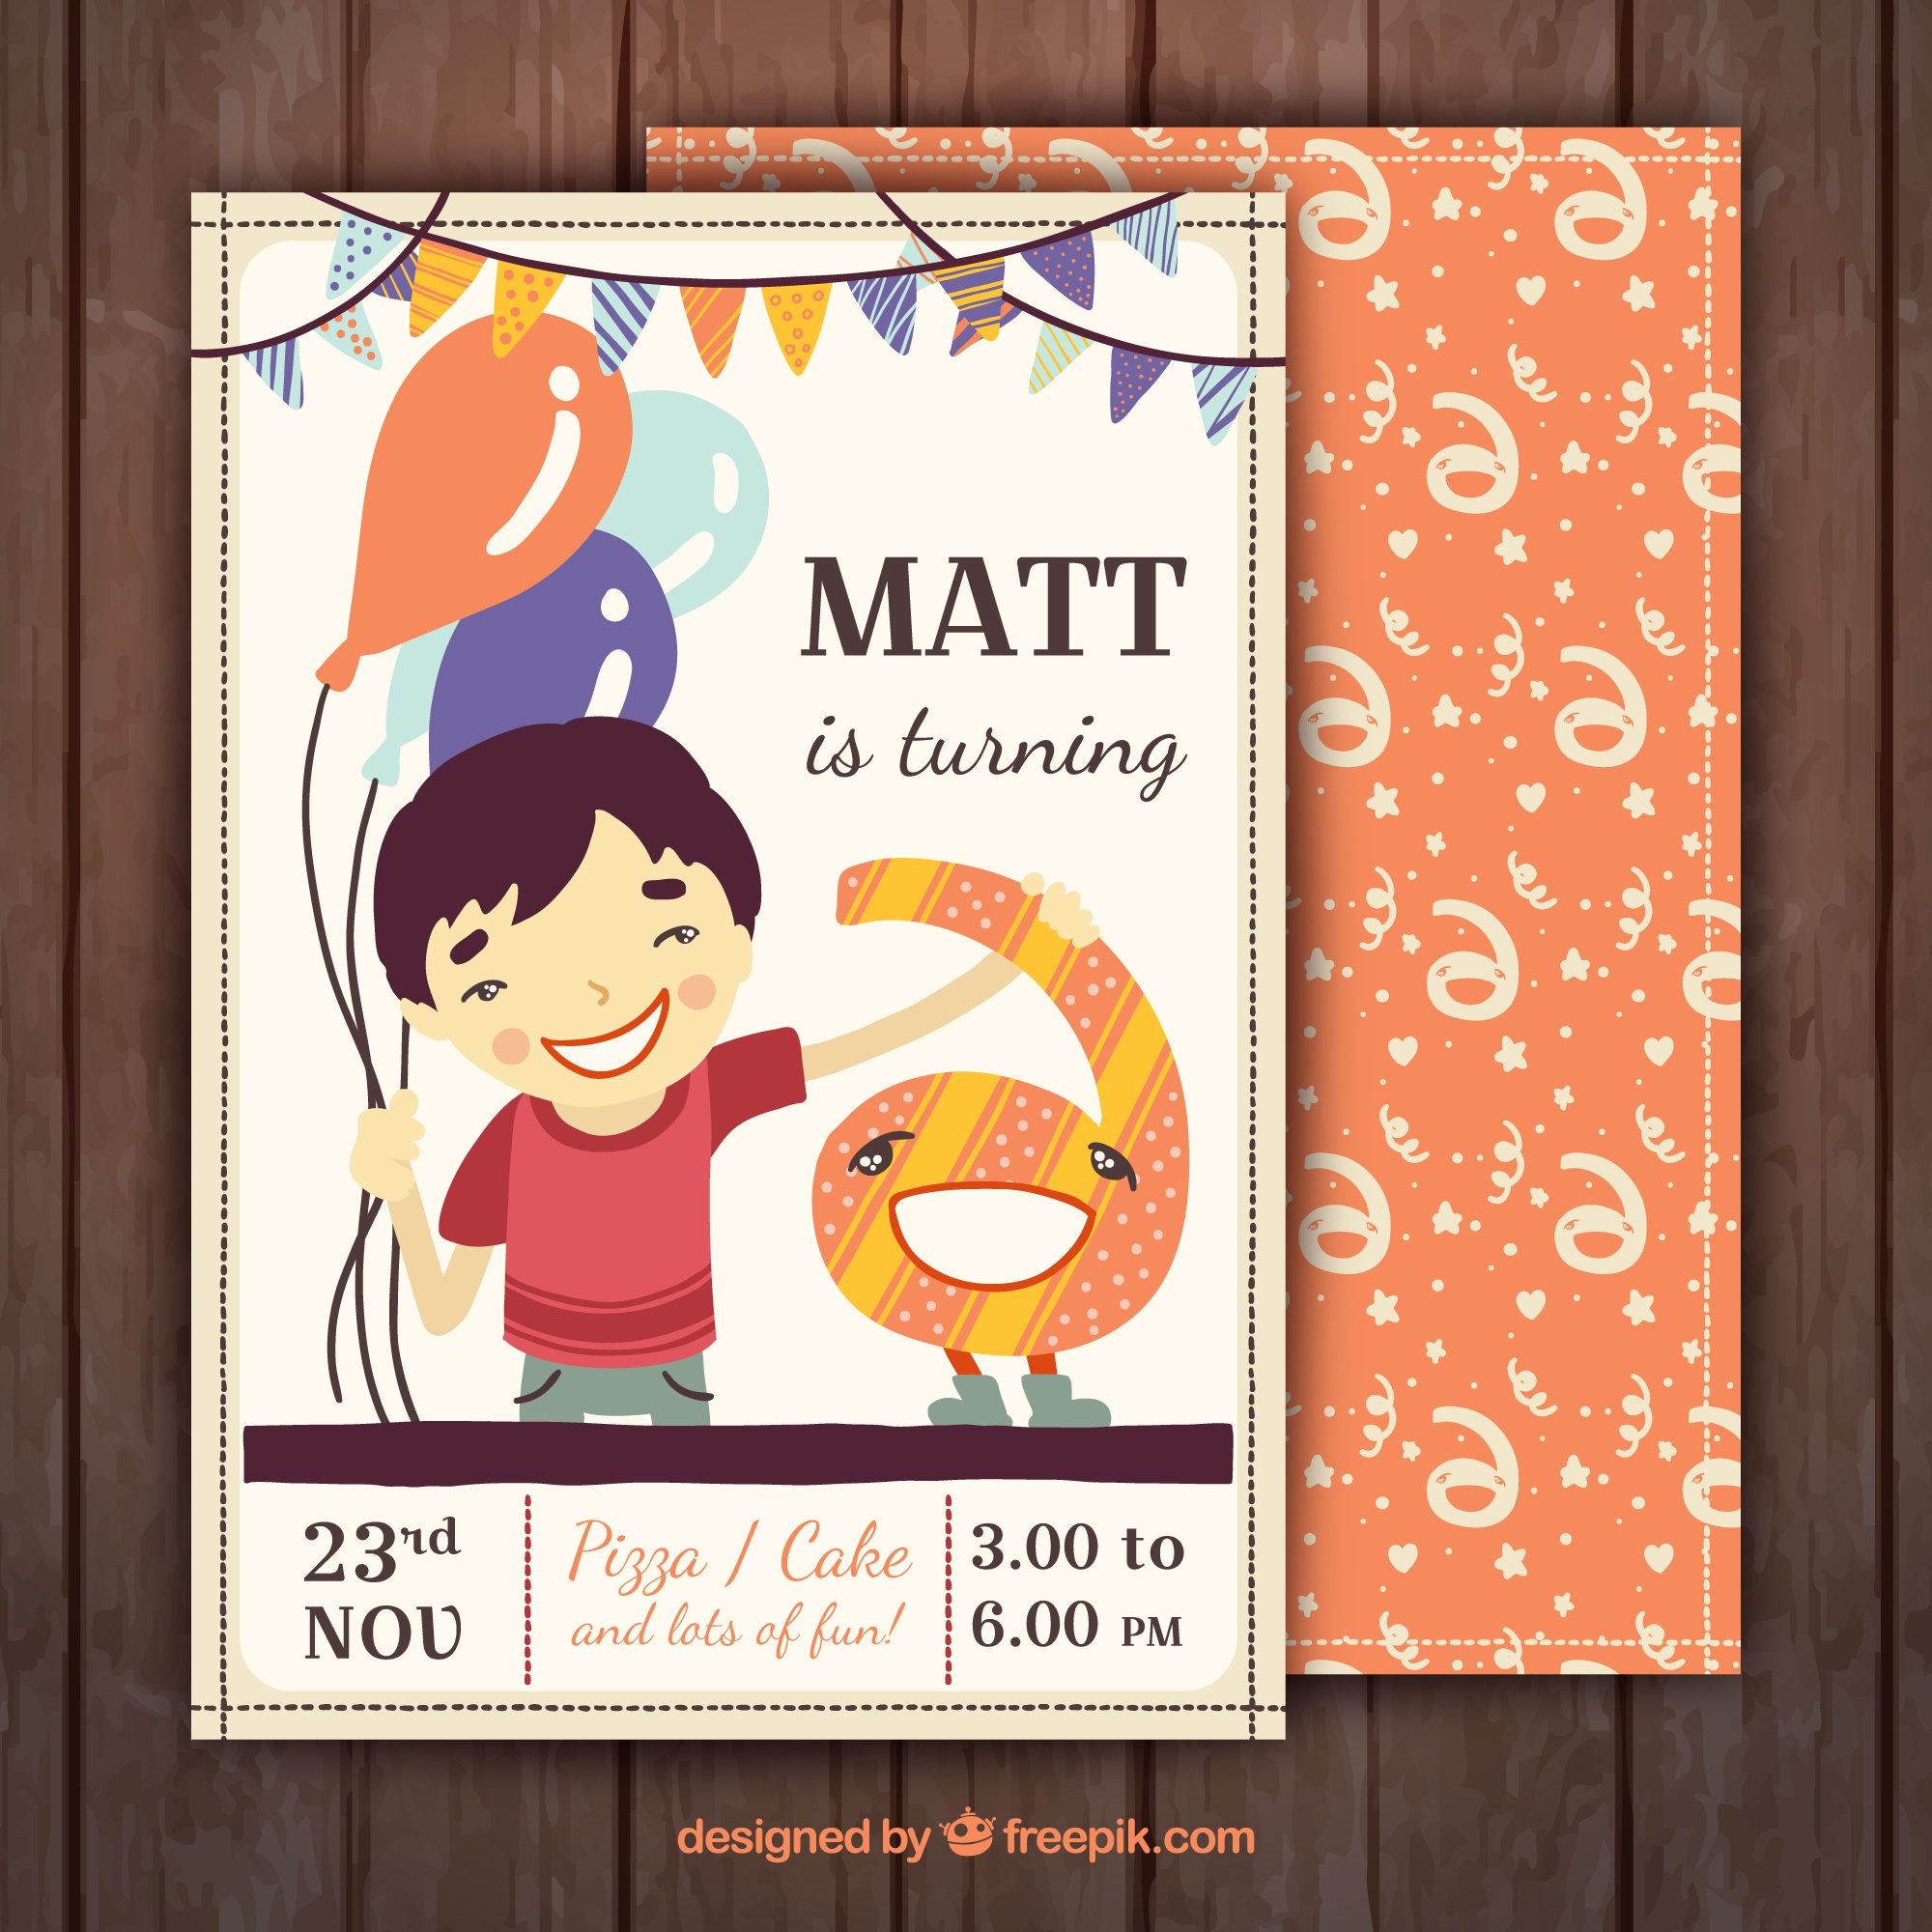 Birthday invitation with smiling boy and colorful decoration